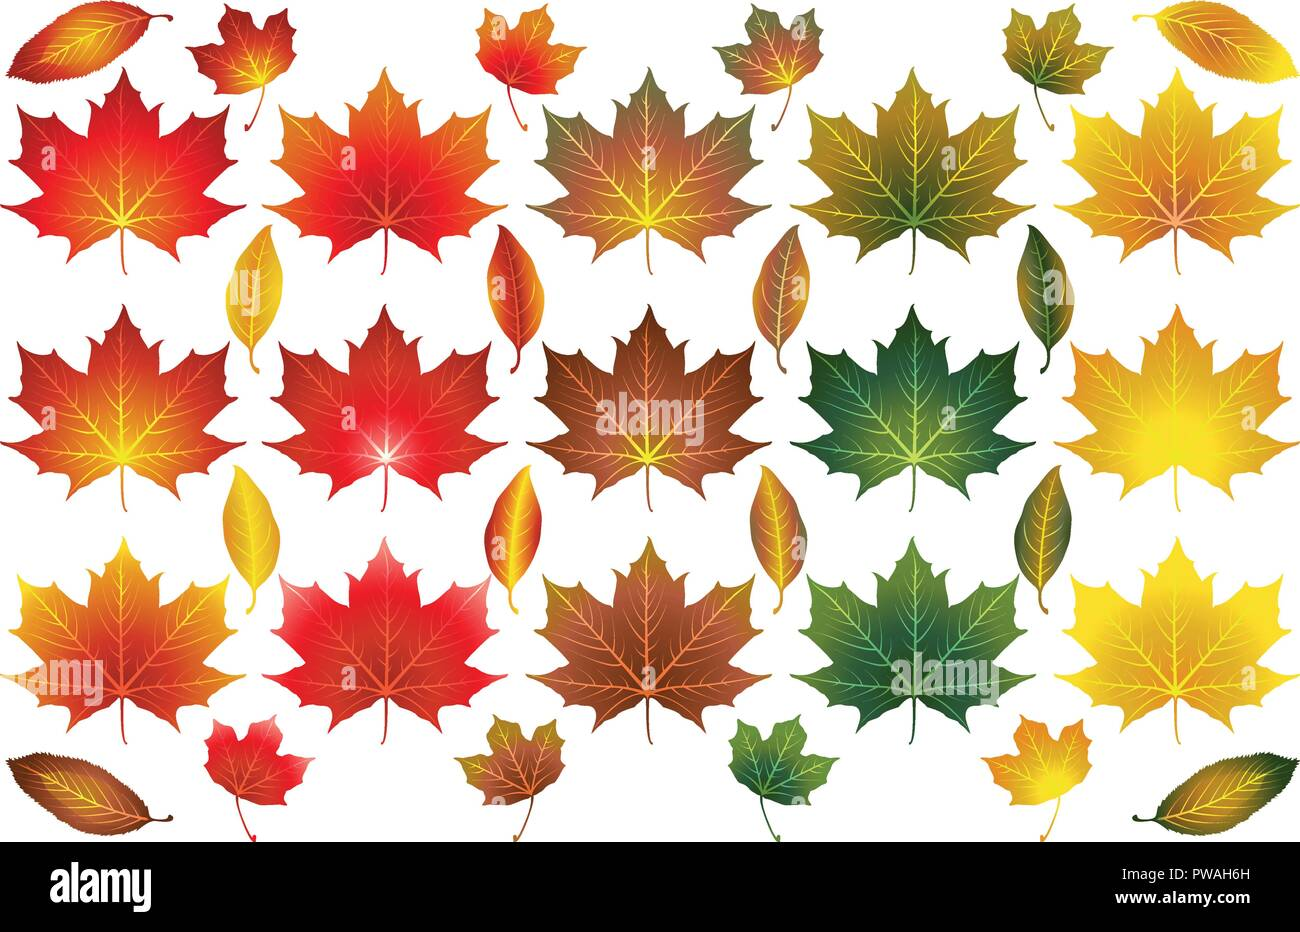 Isolated vector Autumn Fall leaves of different types and colours - Stock Image